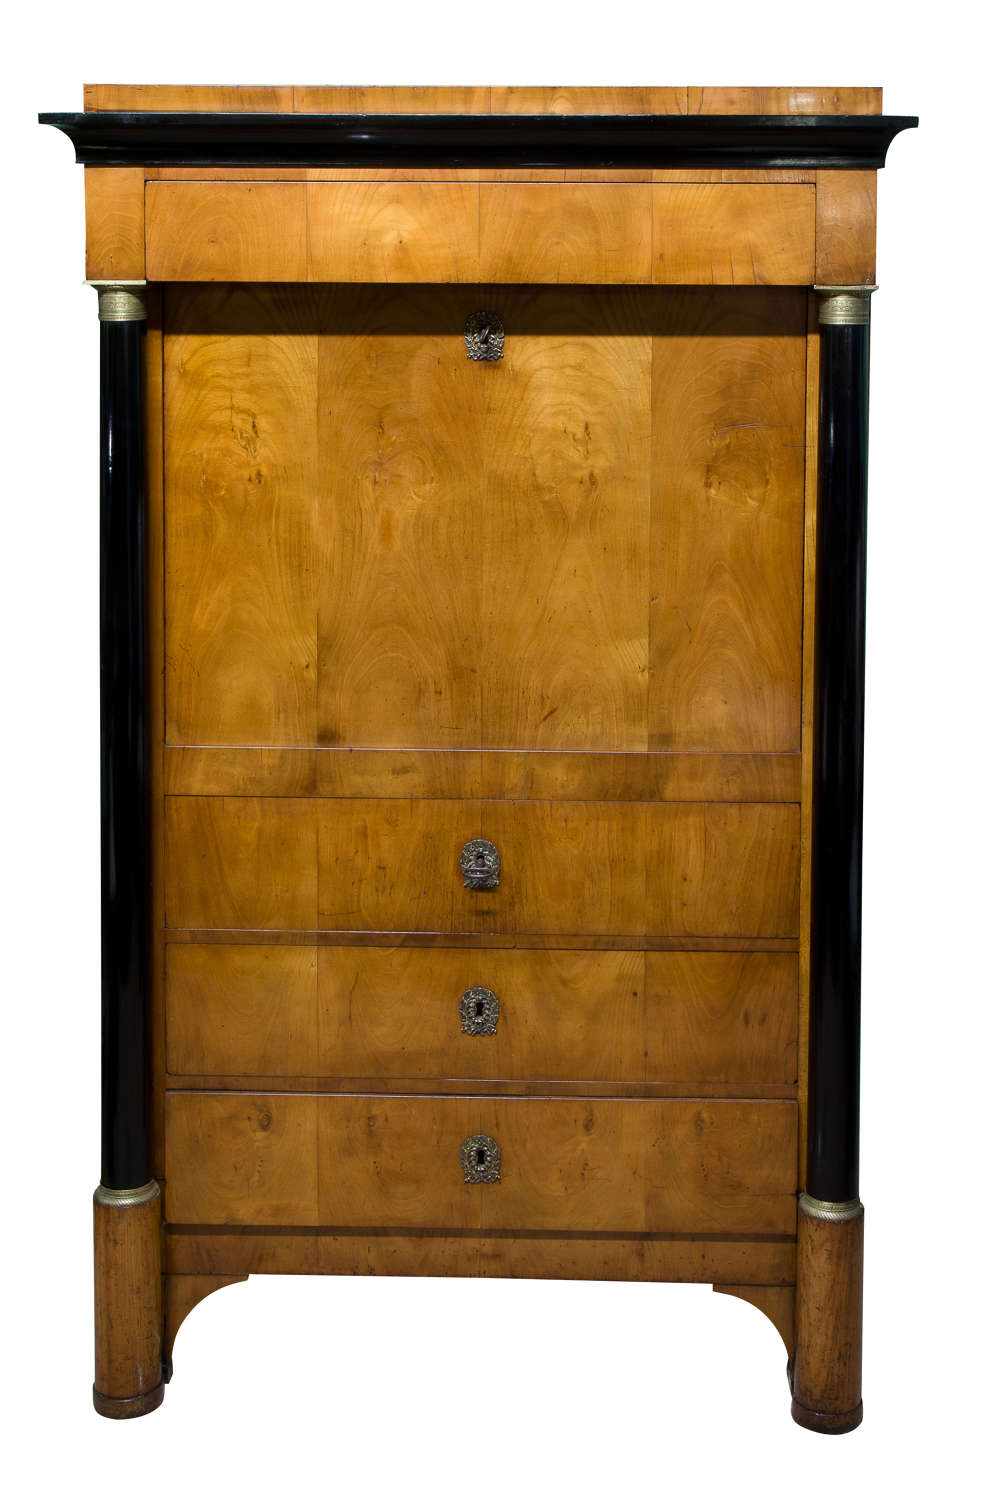 French Empire satinwood Secretaire a abattant